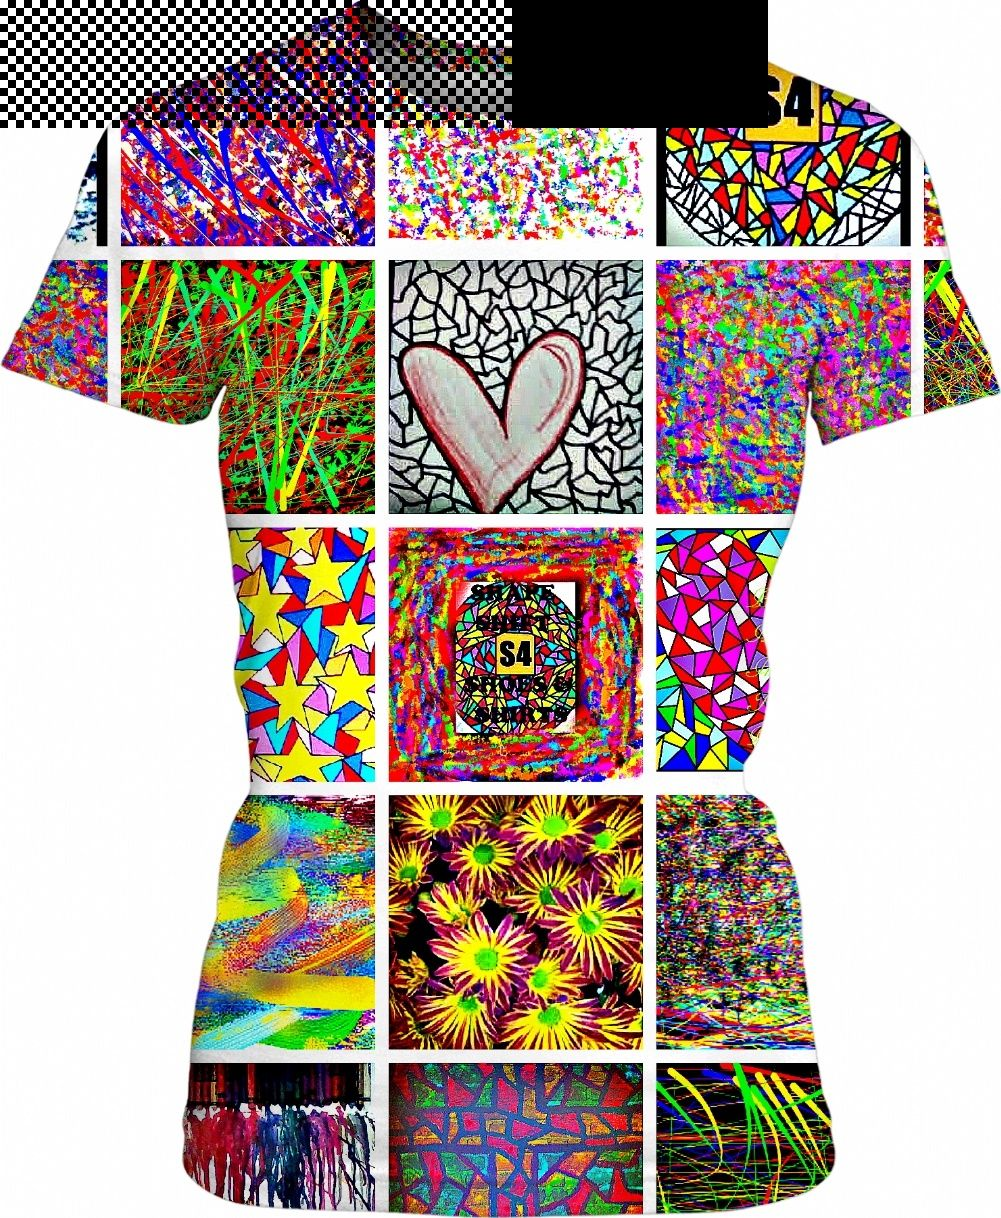 S4 Sampler Art Collage Custom Women's TShirt by S4rasota Clothing Design Co is part of Clothes Art Collage - S4 Sampler Art Collage Custom Women's TShirt by S4rasota Clothing Design Co  with collage of many different images all image rights reserved by us  with collage of images owned copyrighted produced by us